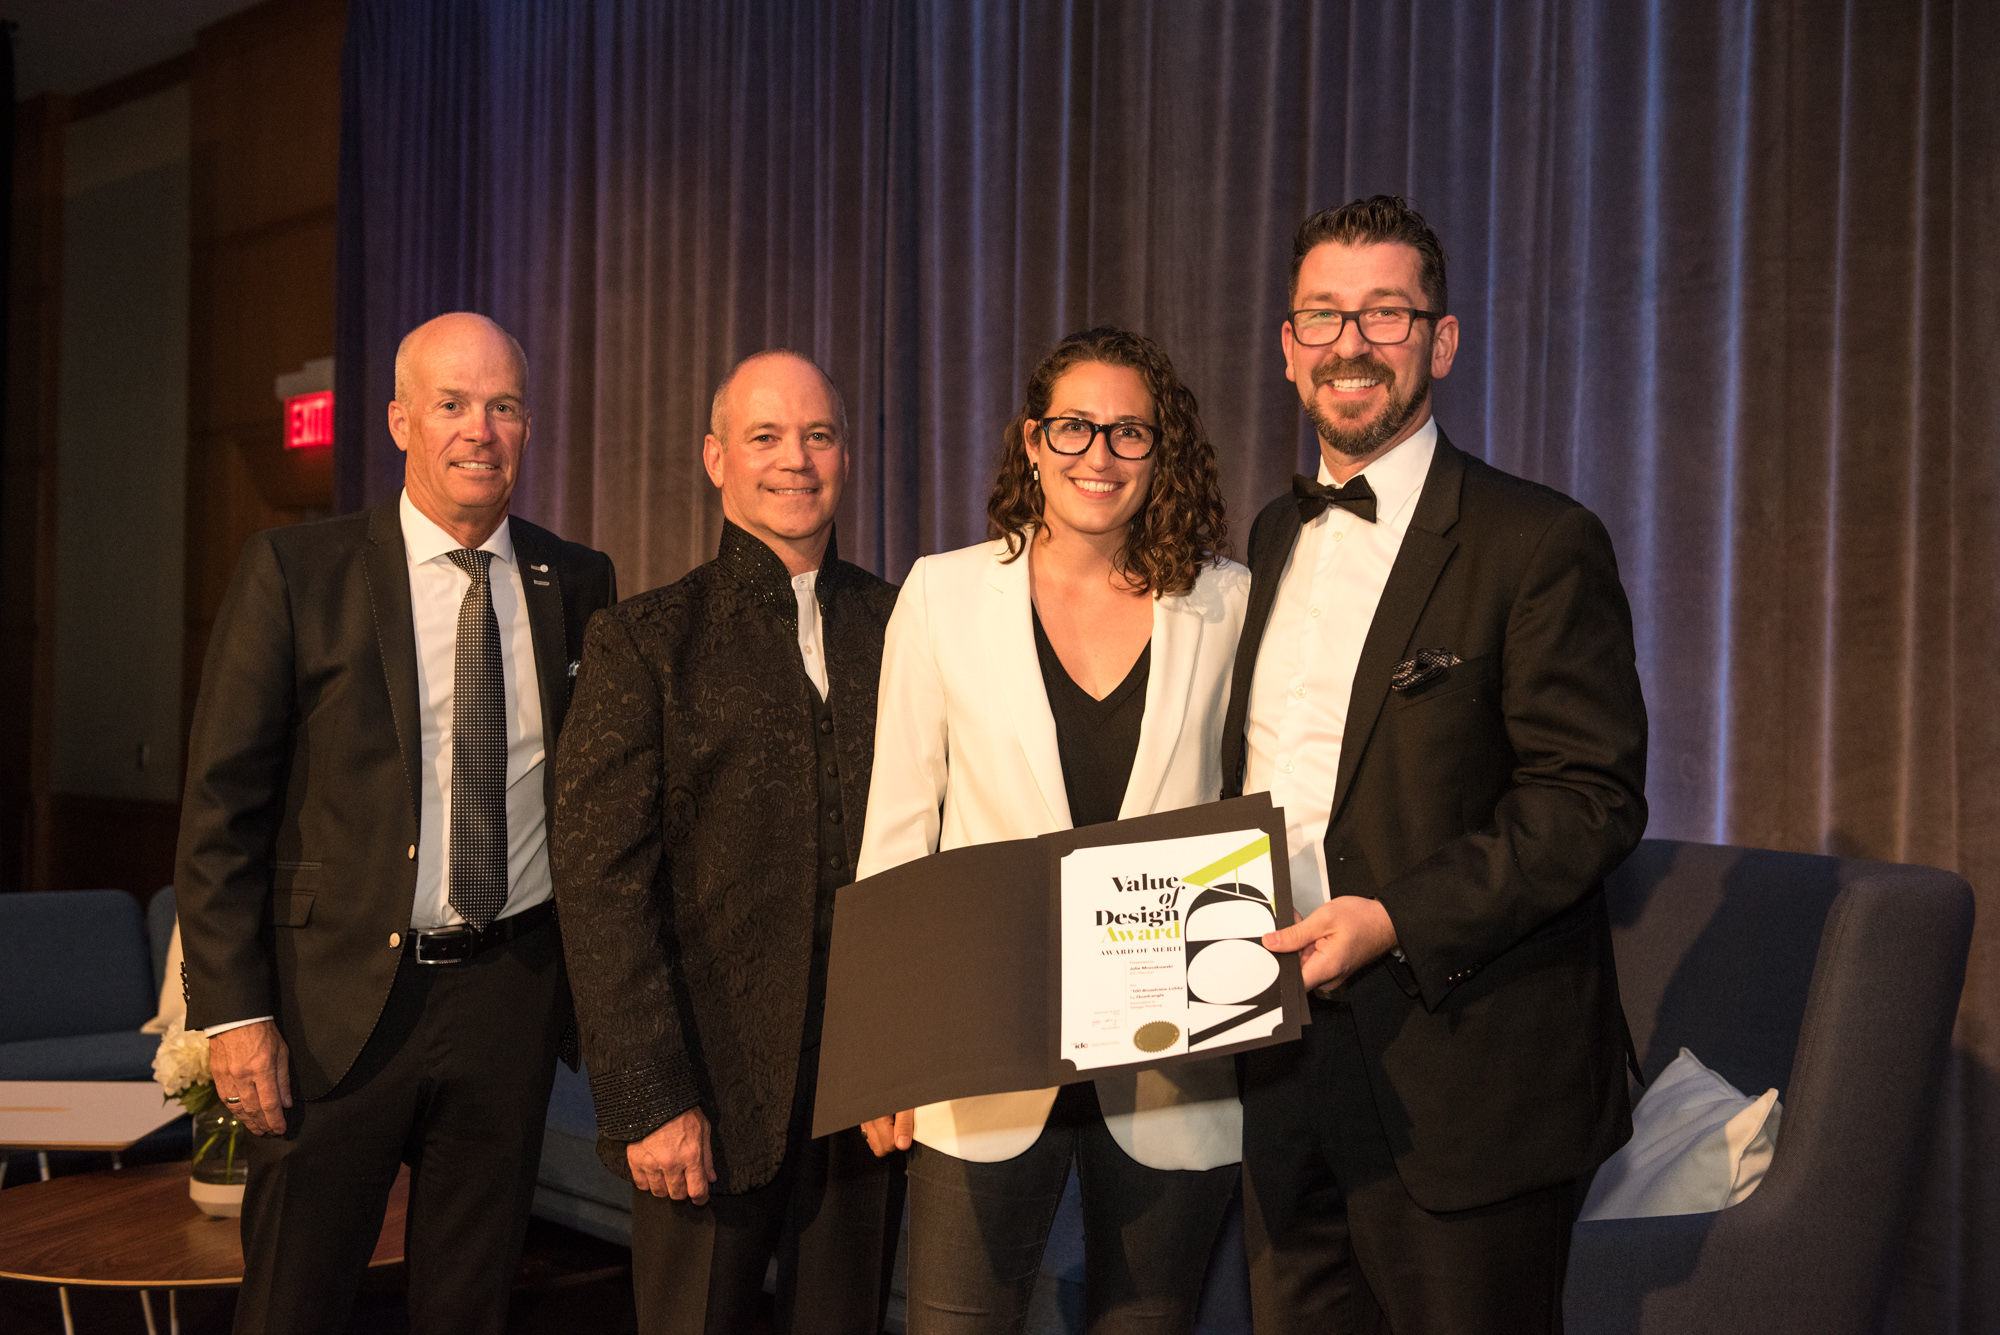 Quadrangle Associate Julie Mroczkowski posing for a photo with three men in suits, accepting a Value of Design Awards certificate